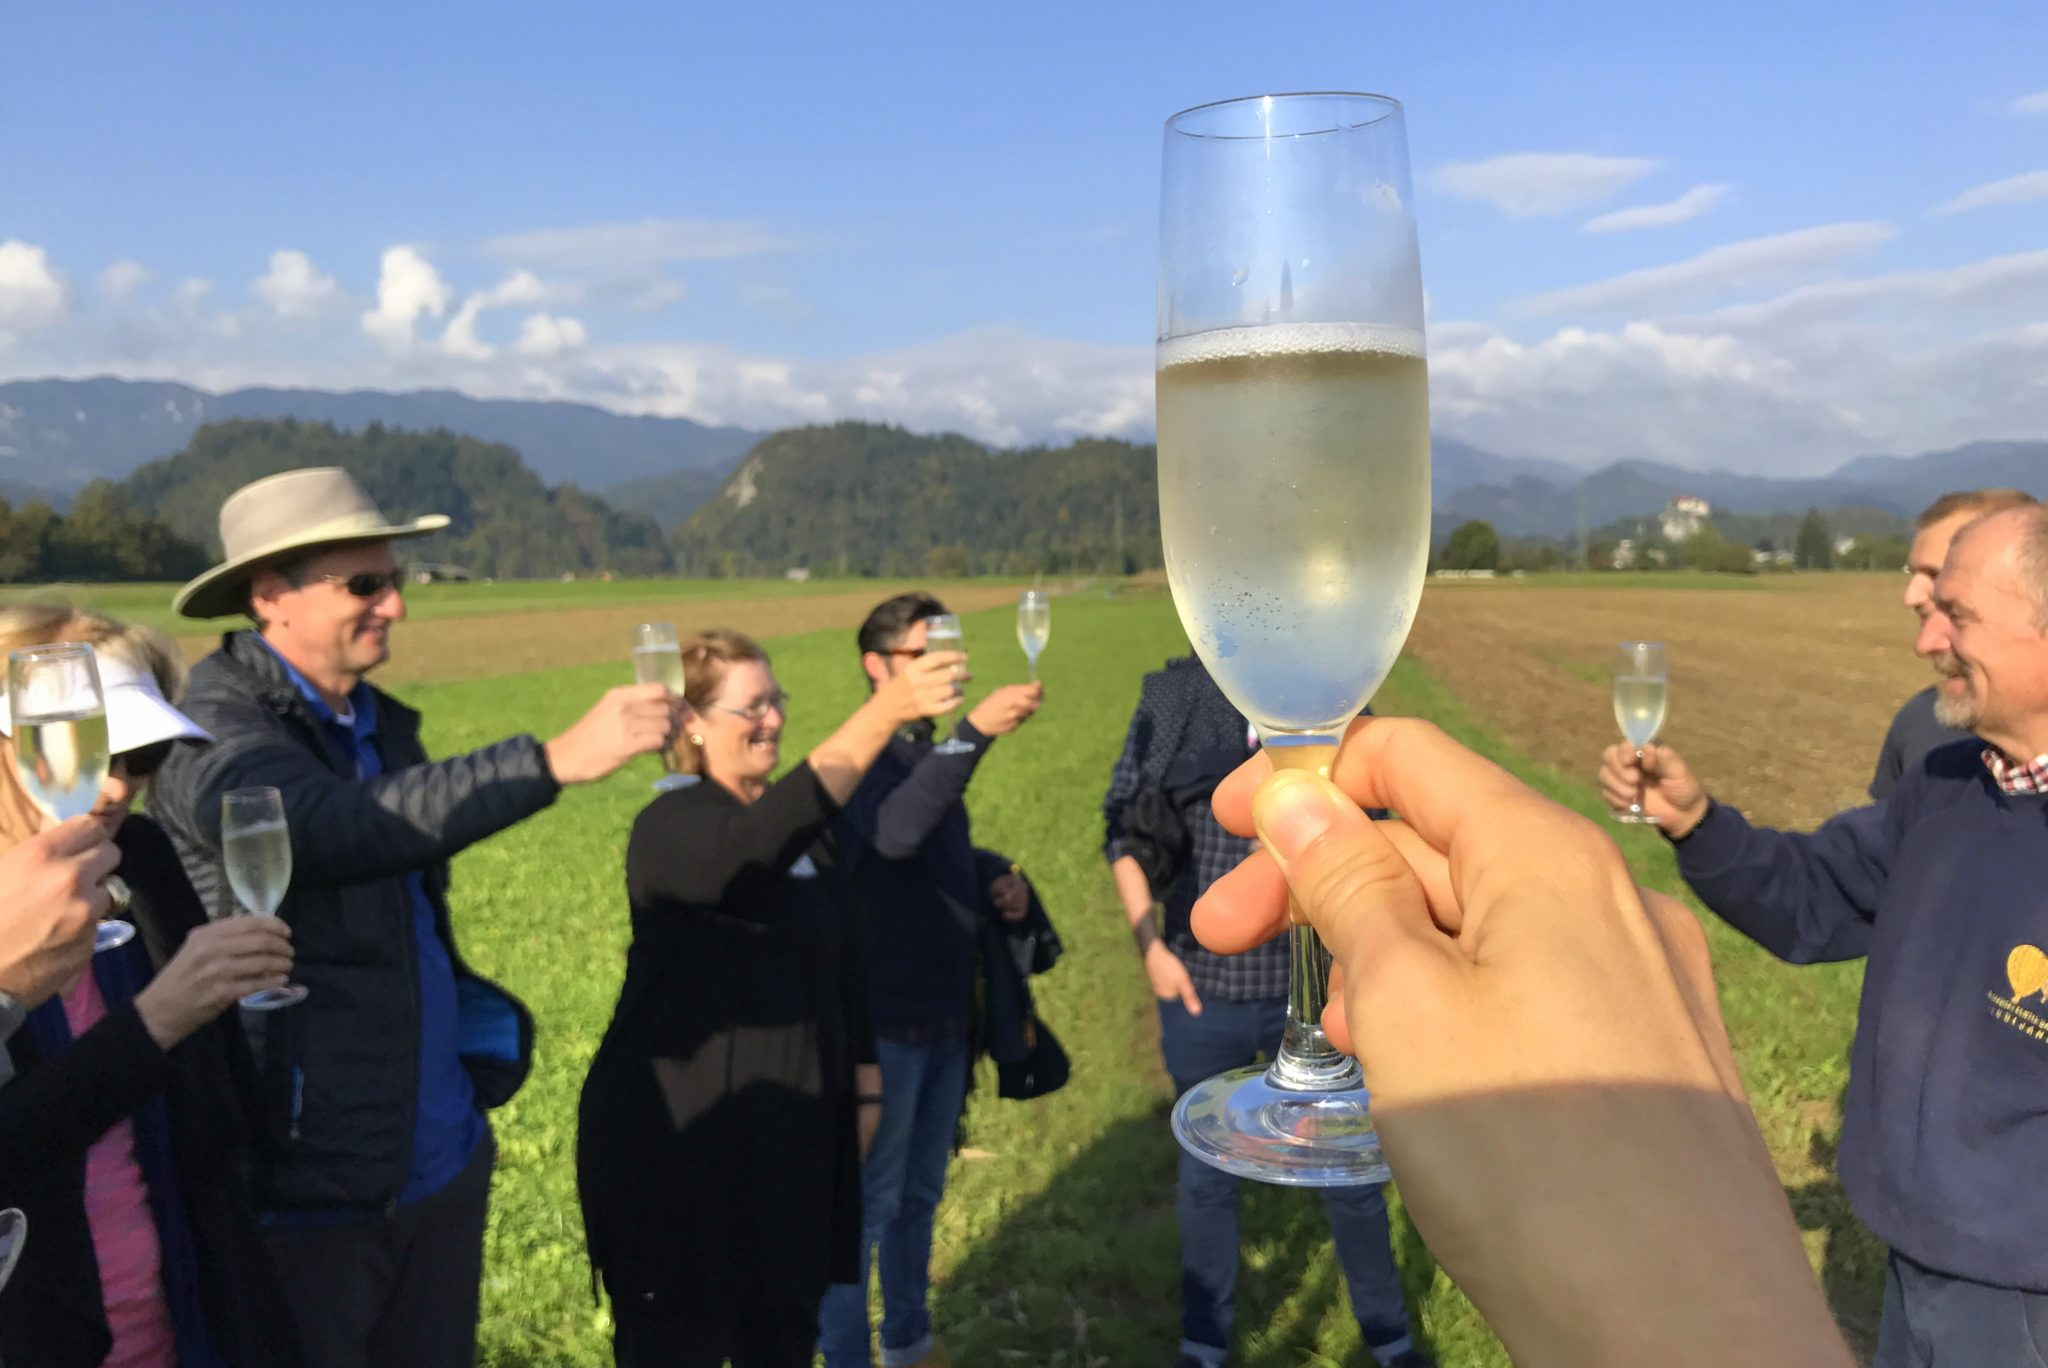 Toasting to flying in a hot air balloon